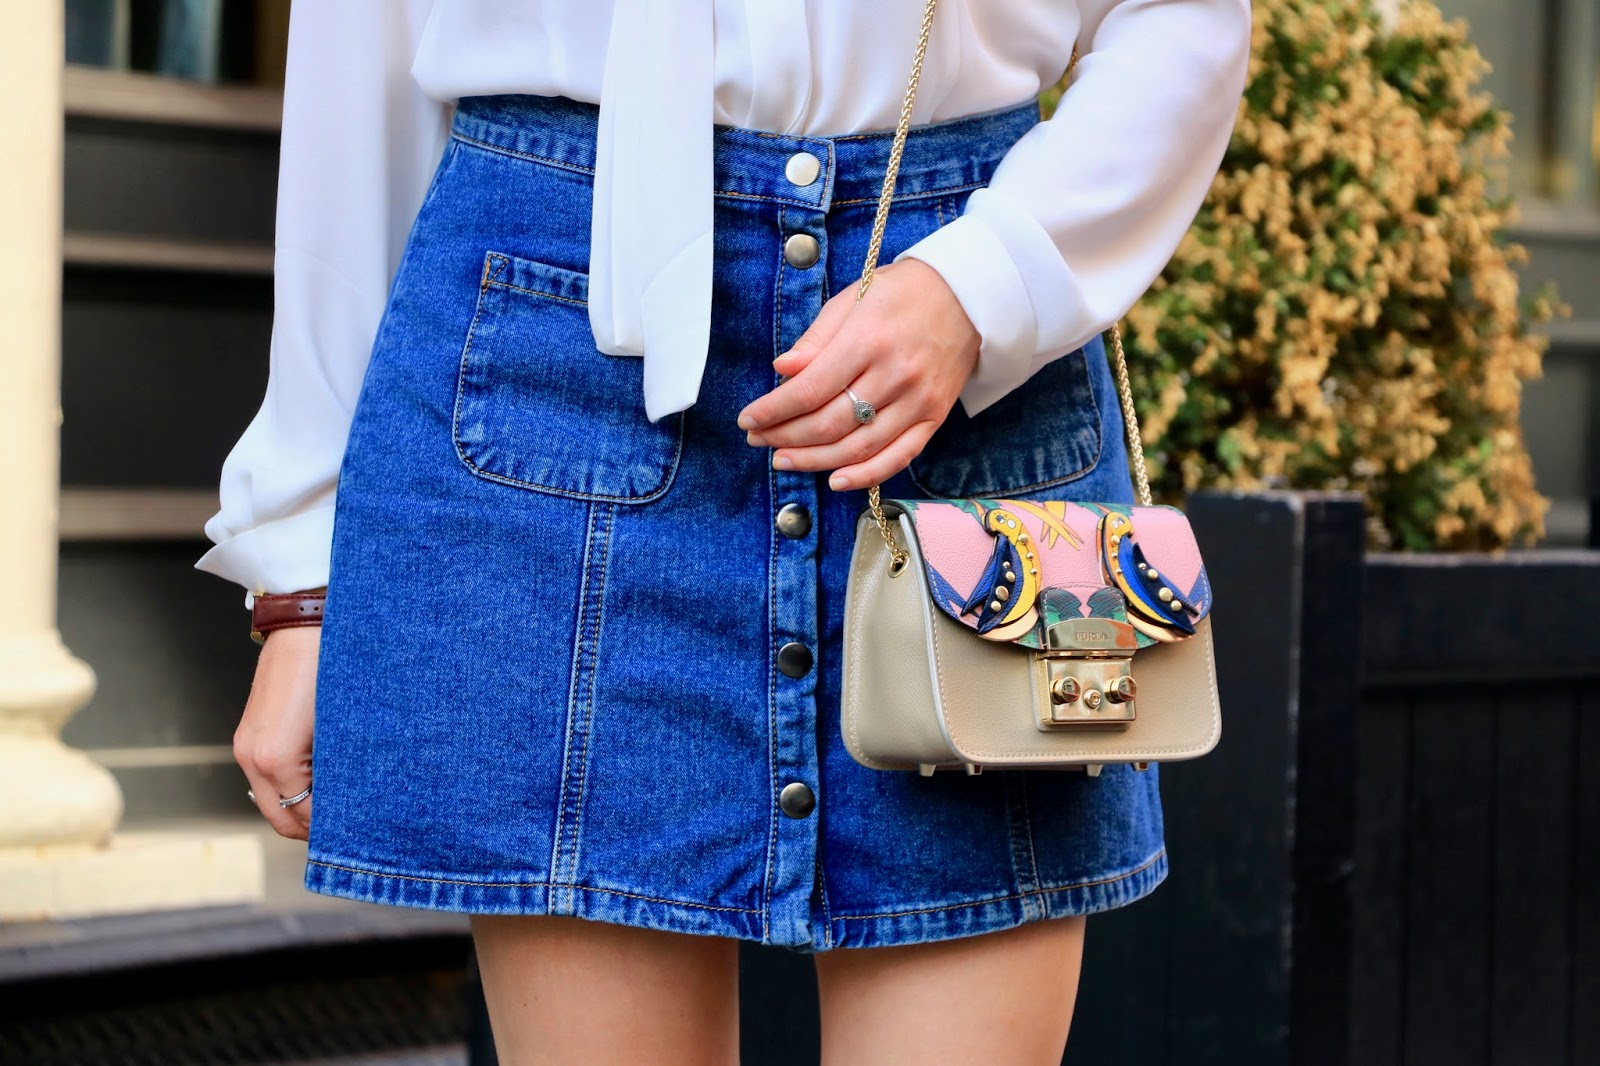 Fashion blogger Kathleen Harper wearing a front-button jean skirt